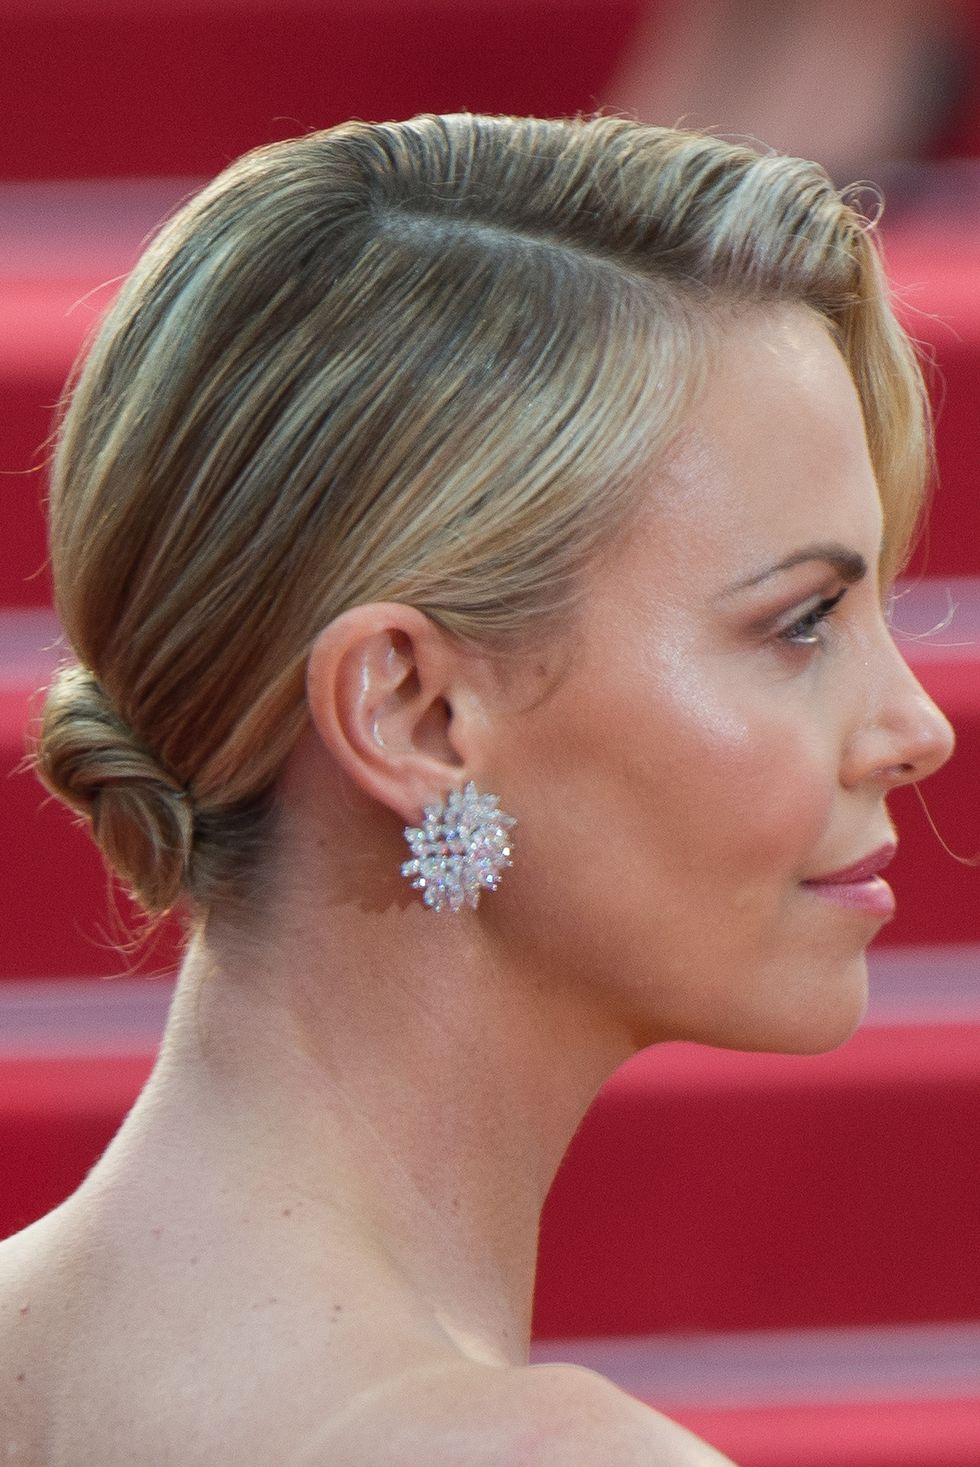 An-Elegant-Neatly-Combed-Low-Bun-with-Side-Fringes Christmas Party Hairstyles to Enhance Your Look